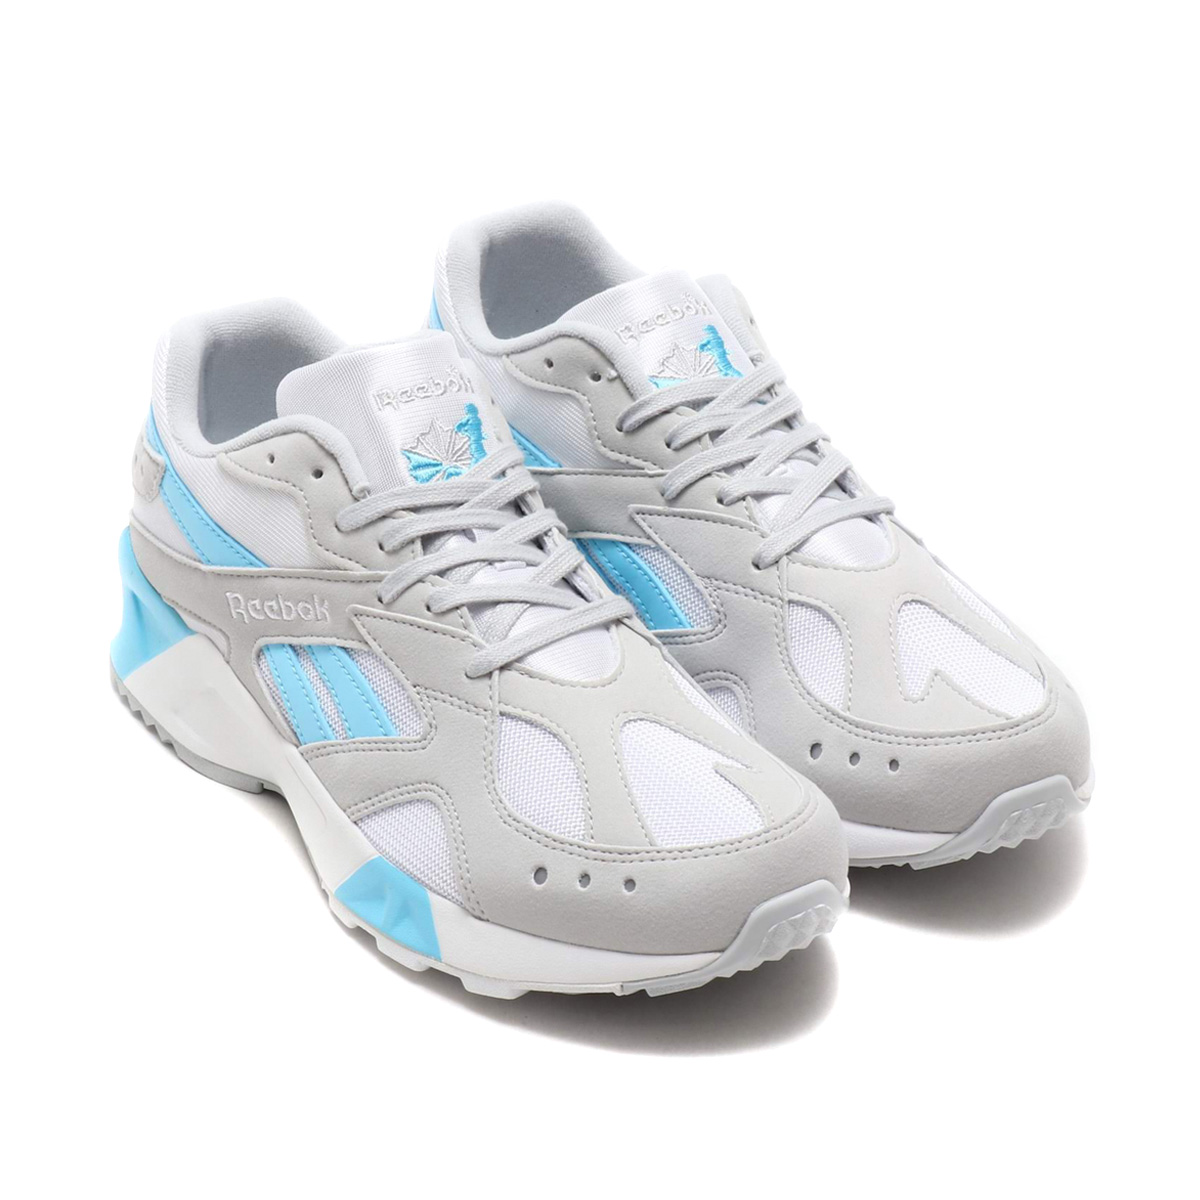 完売 Reebok AZTREK 90s(リーボック アズトレック GRAY/WHITE/DIGITAL 90s)SKULL BLUE【メンズ GRAY/WHITE/DIGITAL 90s(リーボック BLUE【メンズ レディース スニーカー】18FW-I, アキタOUTLET:cb068c5e --- business.personalco5.dominiotemporario.com